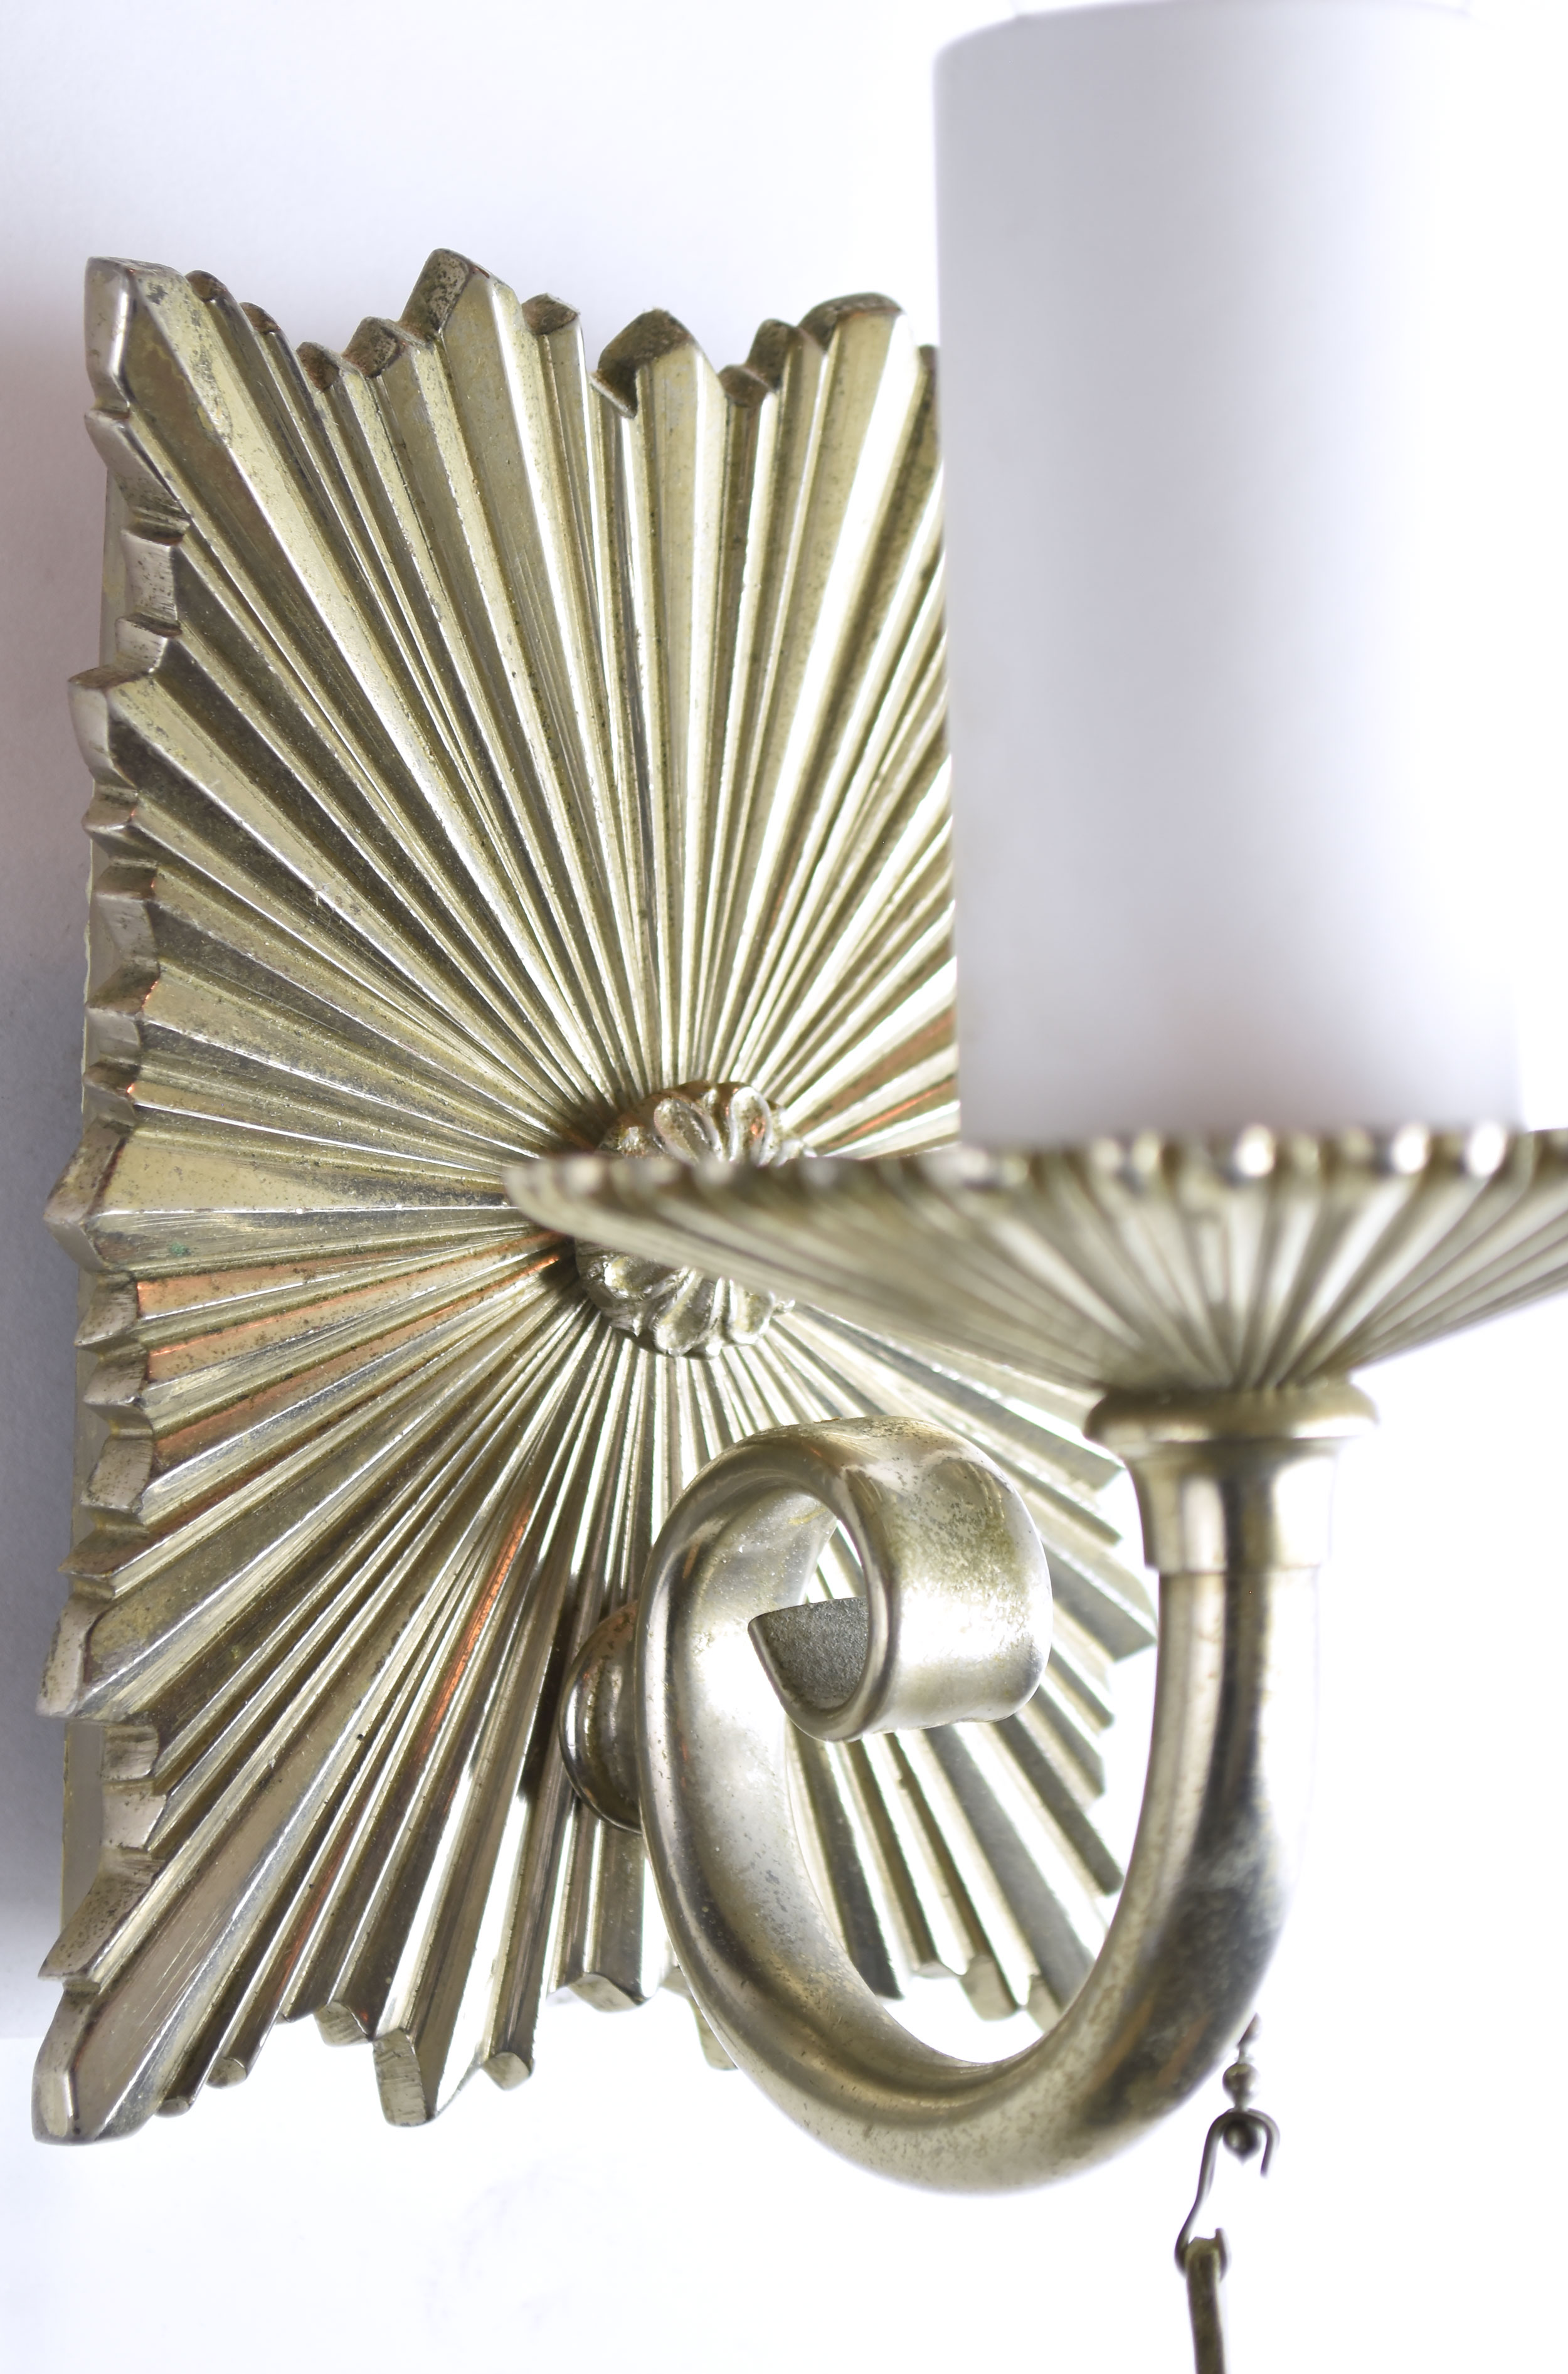 47901-silver-plated-lead-caldwell-sconce-back-plate.jpg